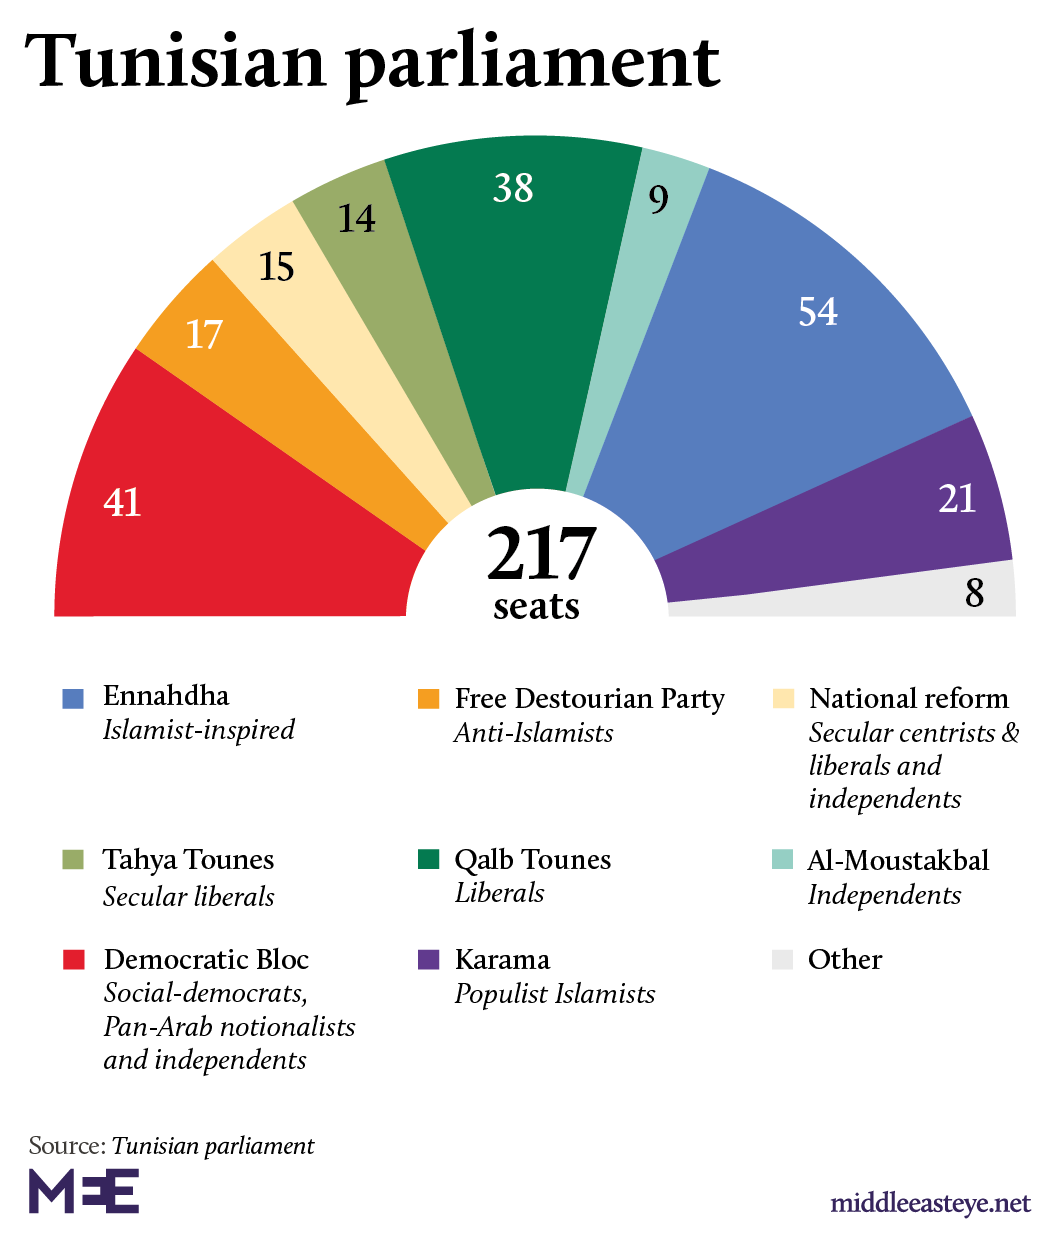 Tunisia parliament: Breakdown of seats